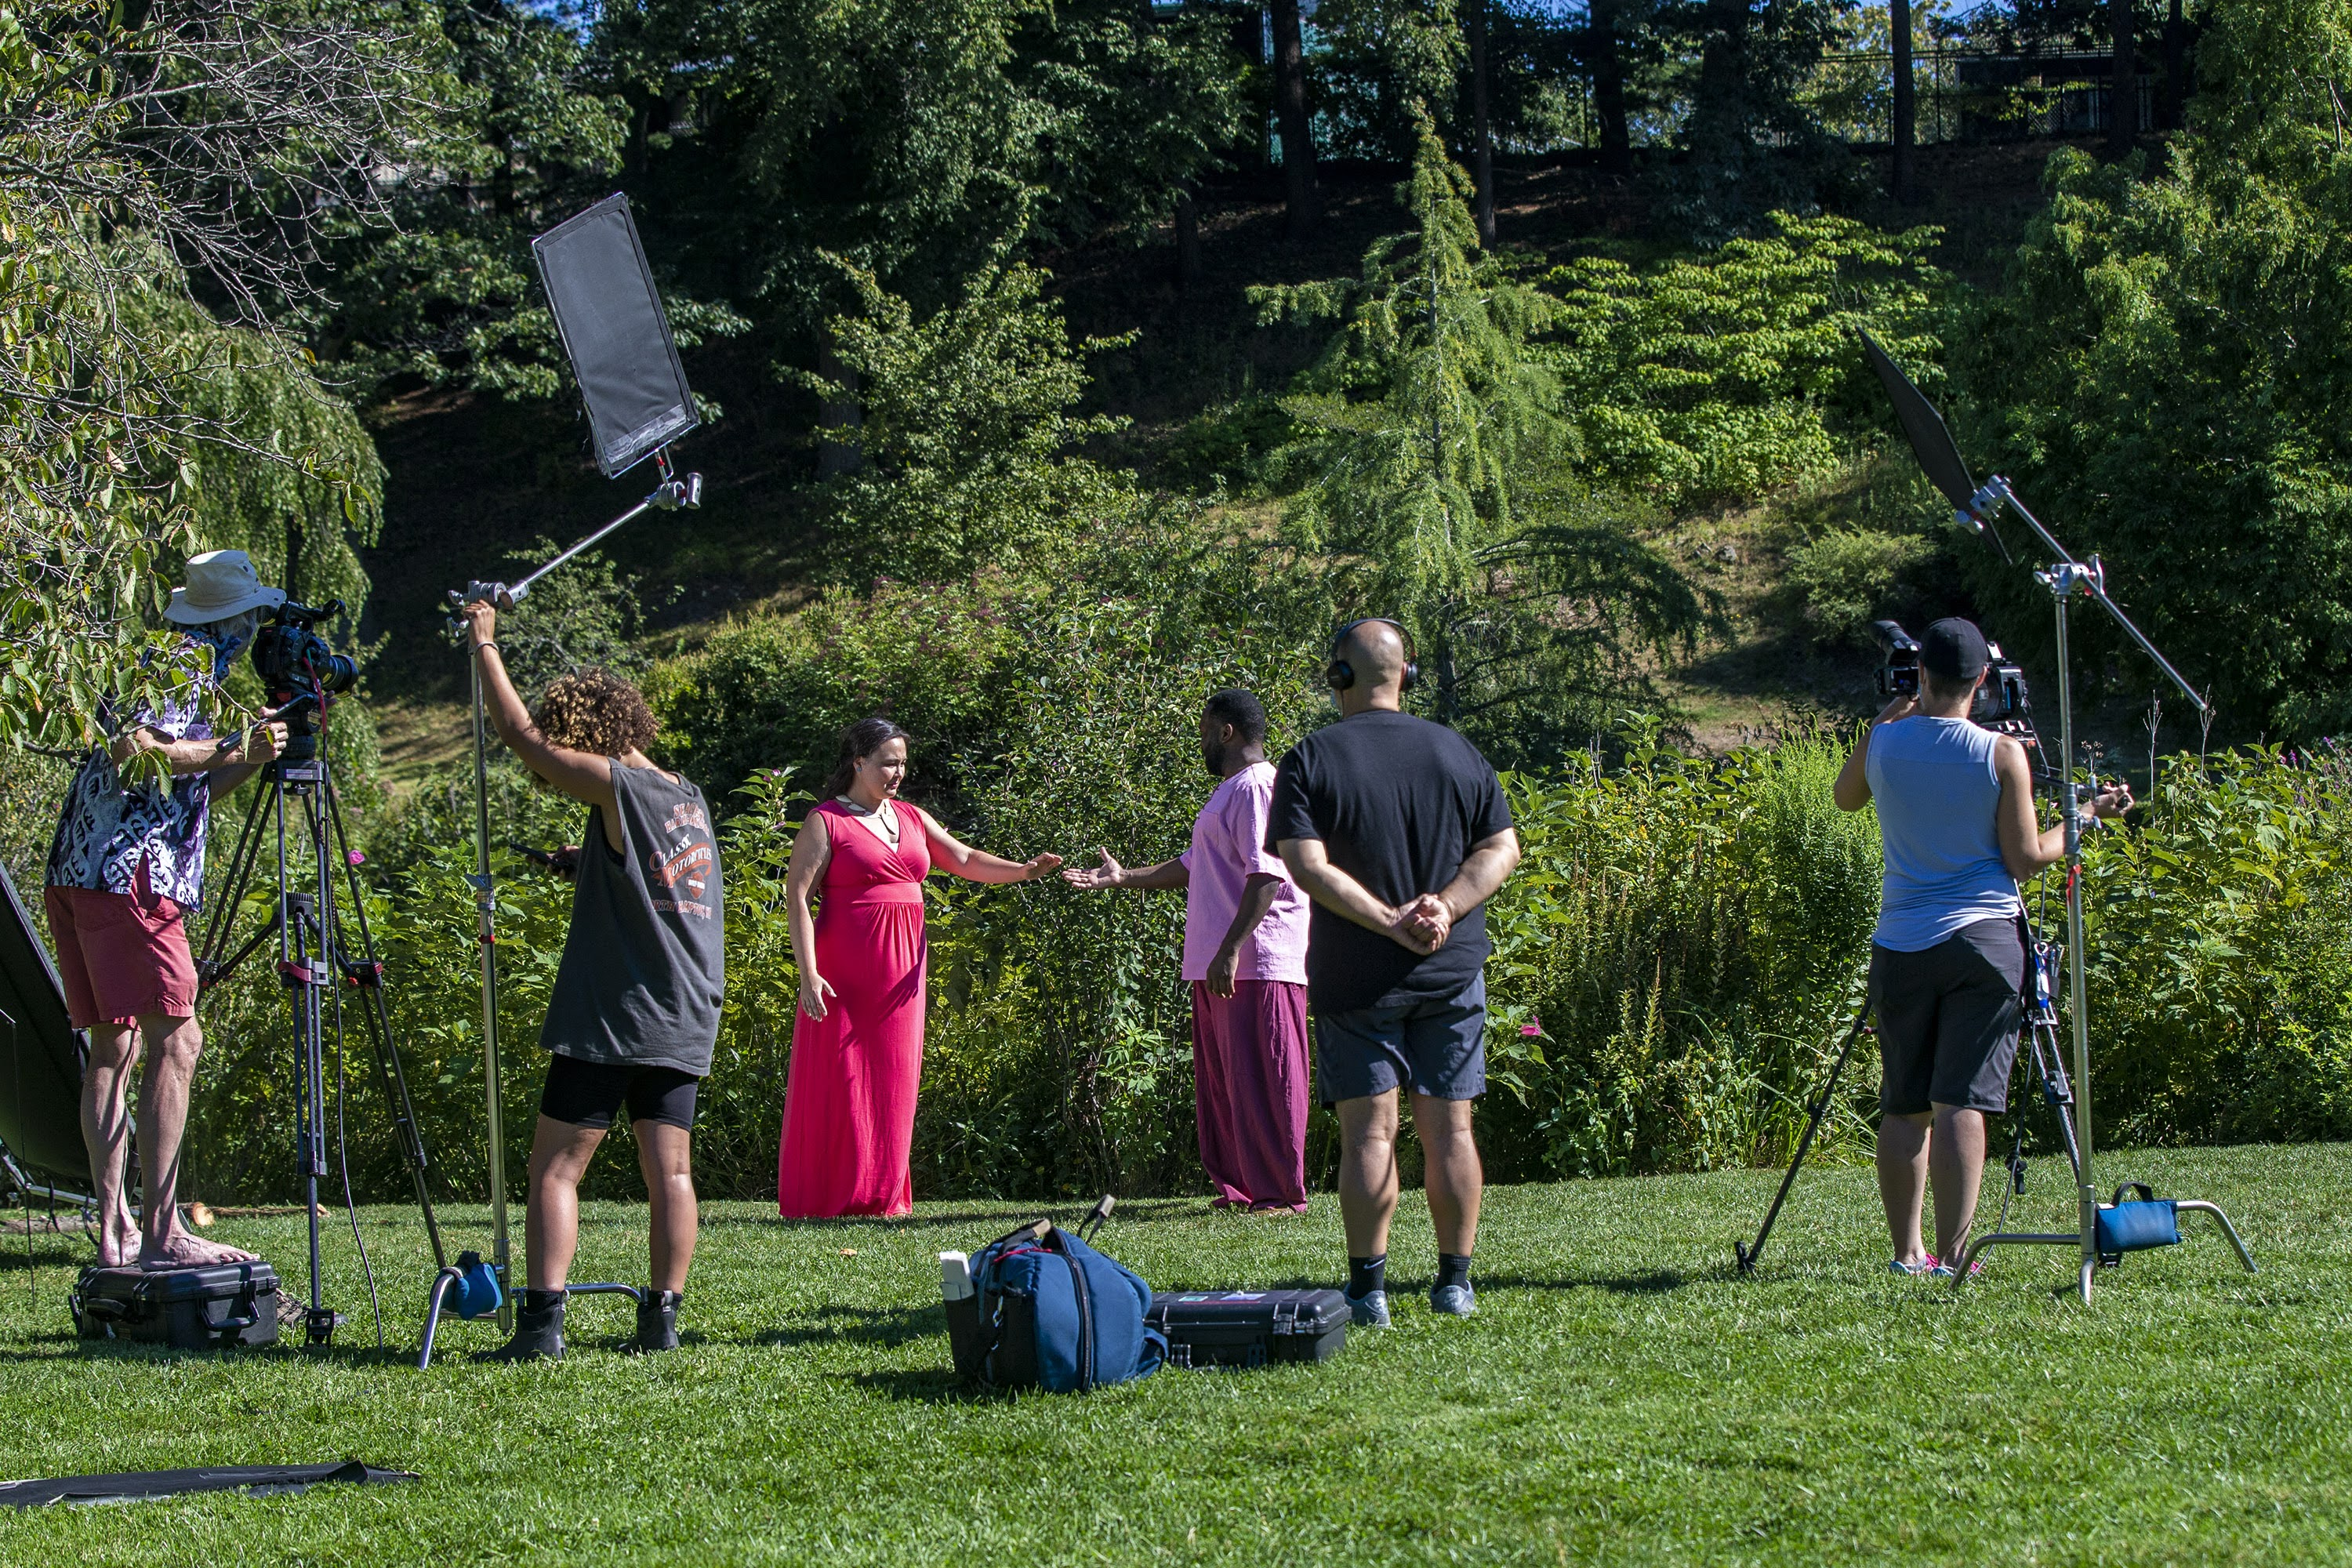 """Cast and crew filming the log scene of """"The Tempest"""" at the Arnold Arboretum, one of a series of selected scenes, sonnets and monologues by the Actors' Shakespeare Project called """"The Nature of Shakespeare."""" Each scene is being filmed and will be presented for online viewing in two episodes. (Jesse Costa/WBUR)"""